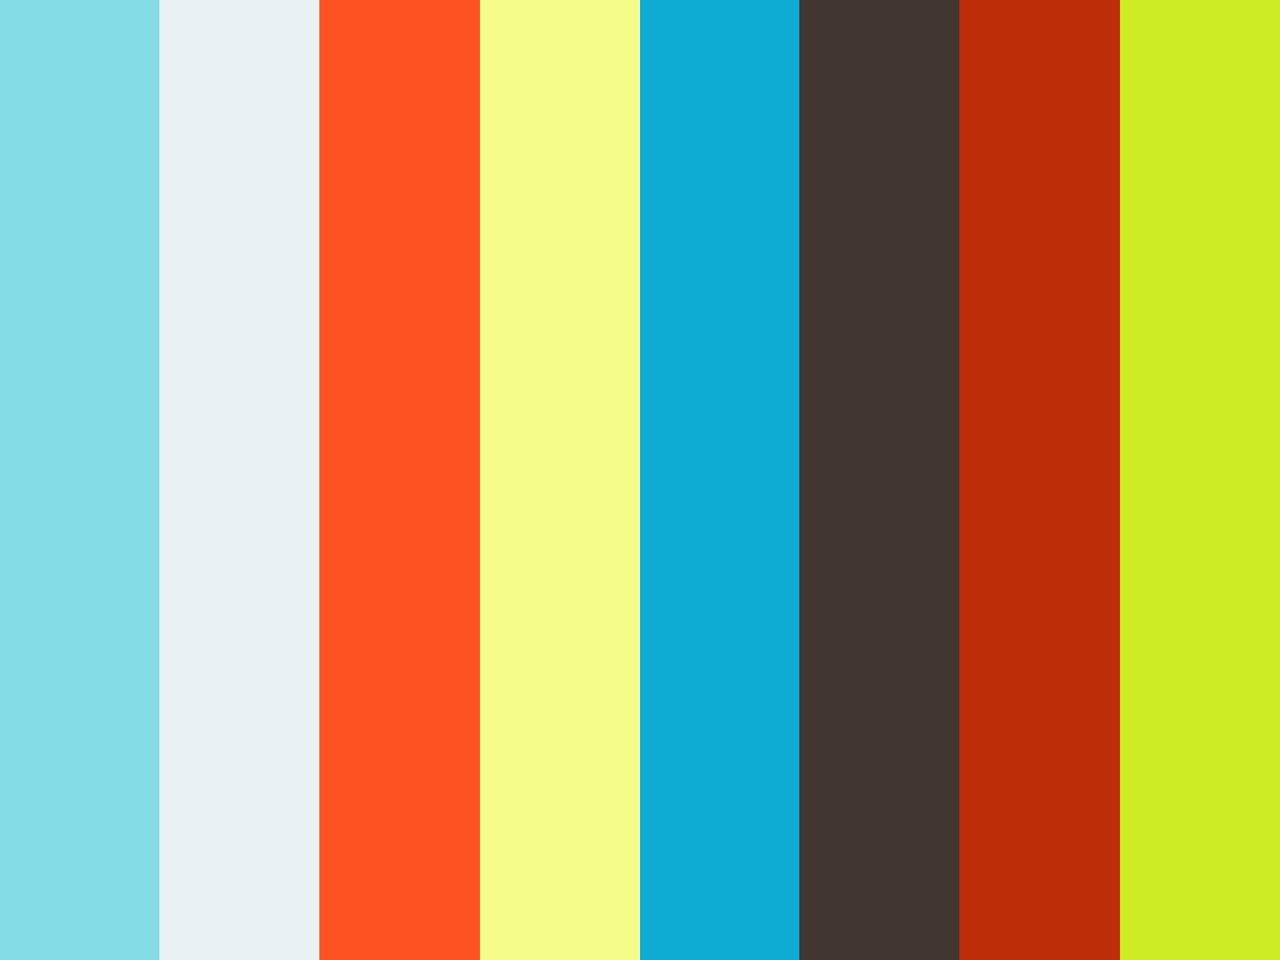 playing ping pong against myself